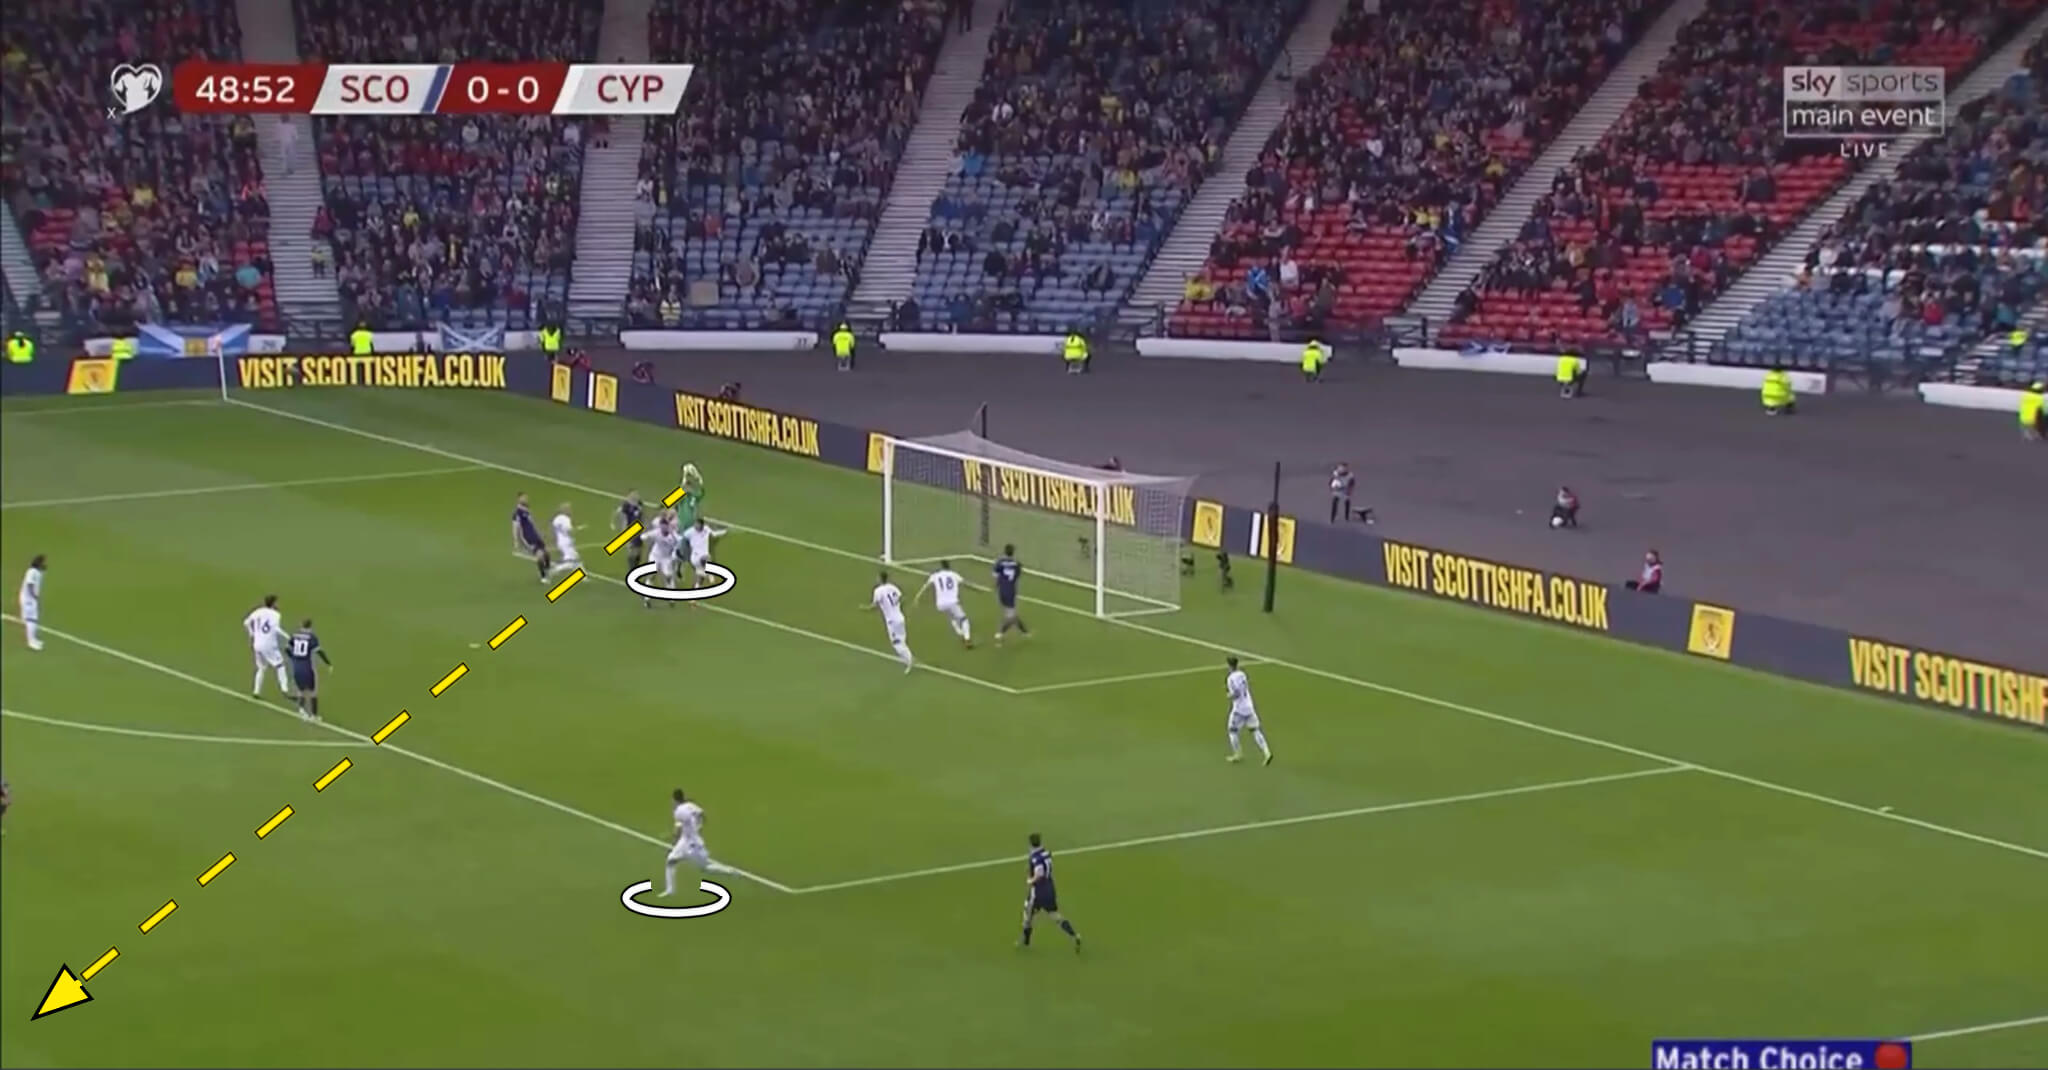 UEFA Euro 2020 Qualifiers: Scotland v Cyprus - tactical analysis - tactics